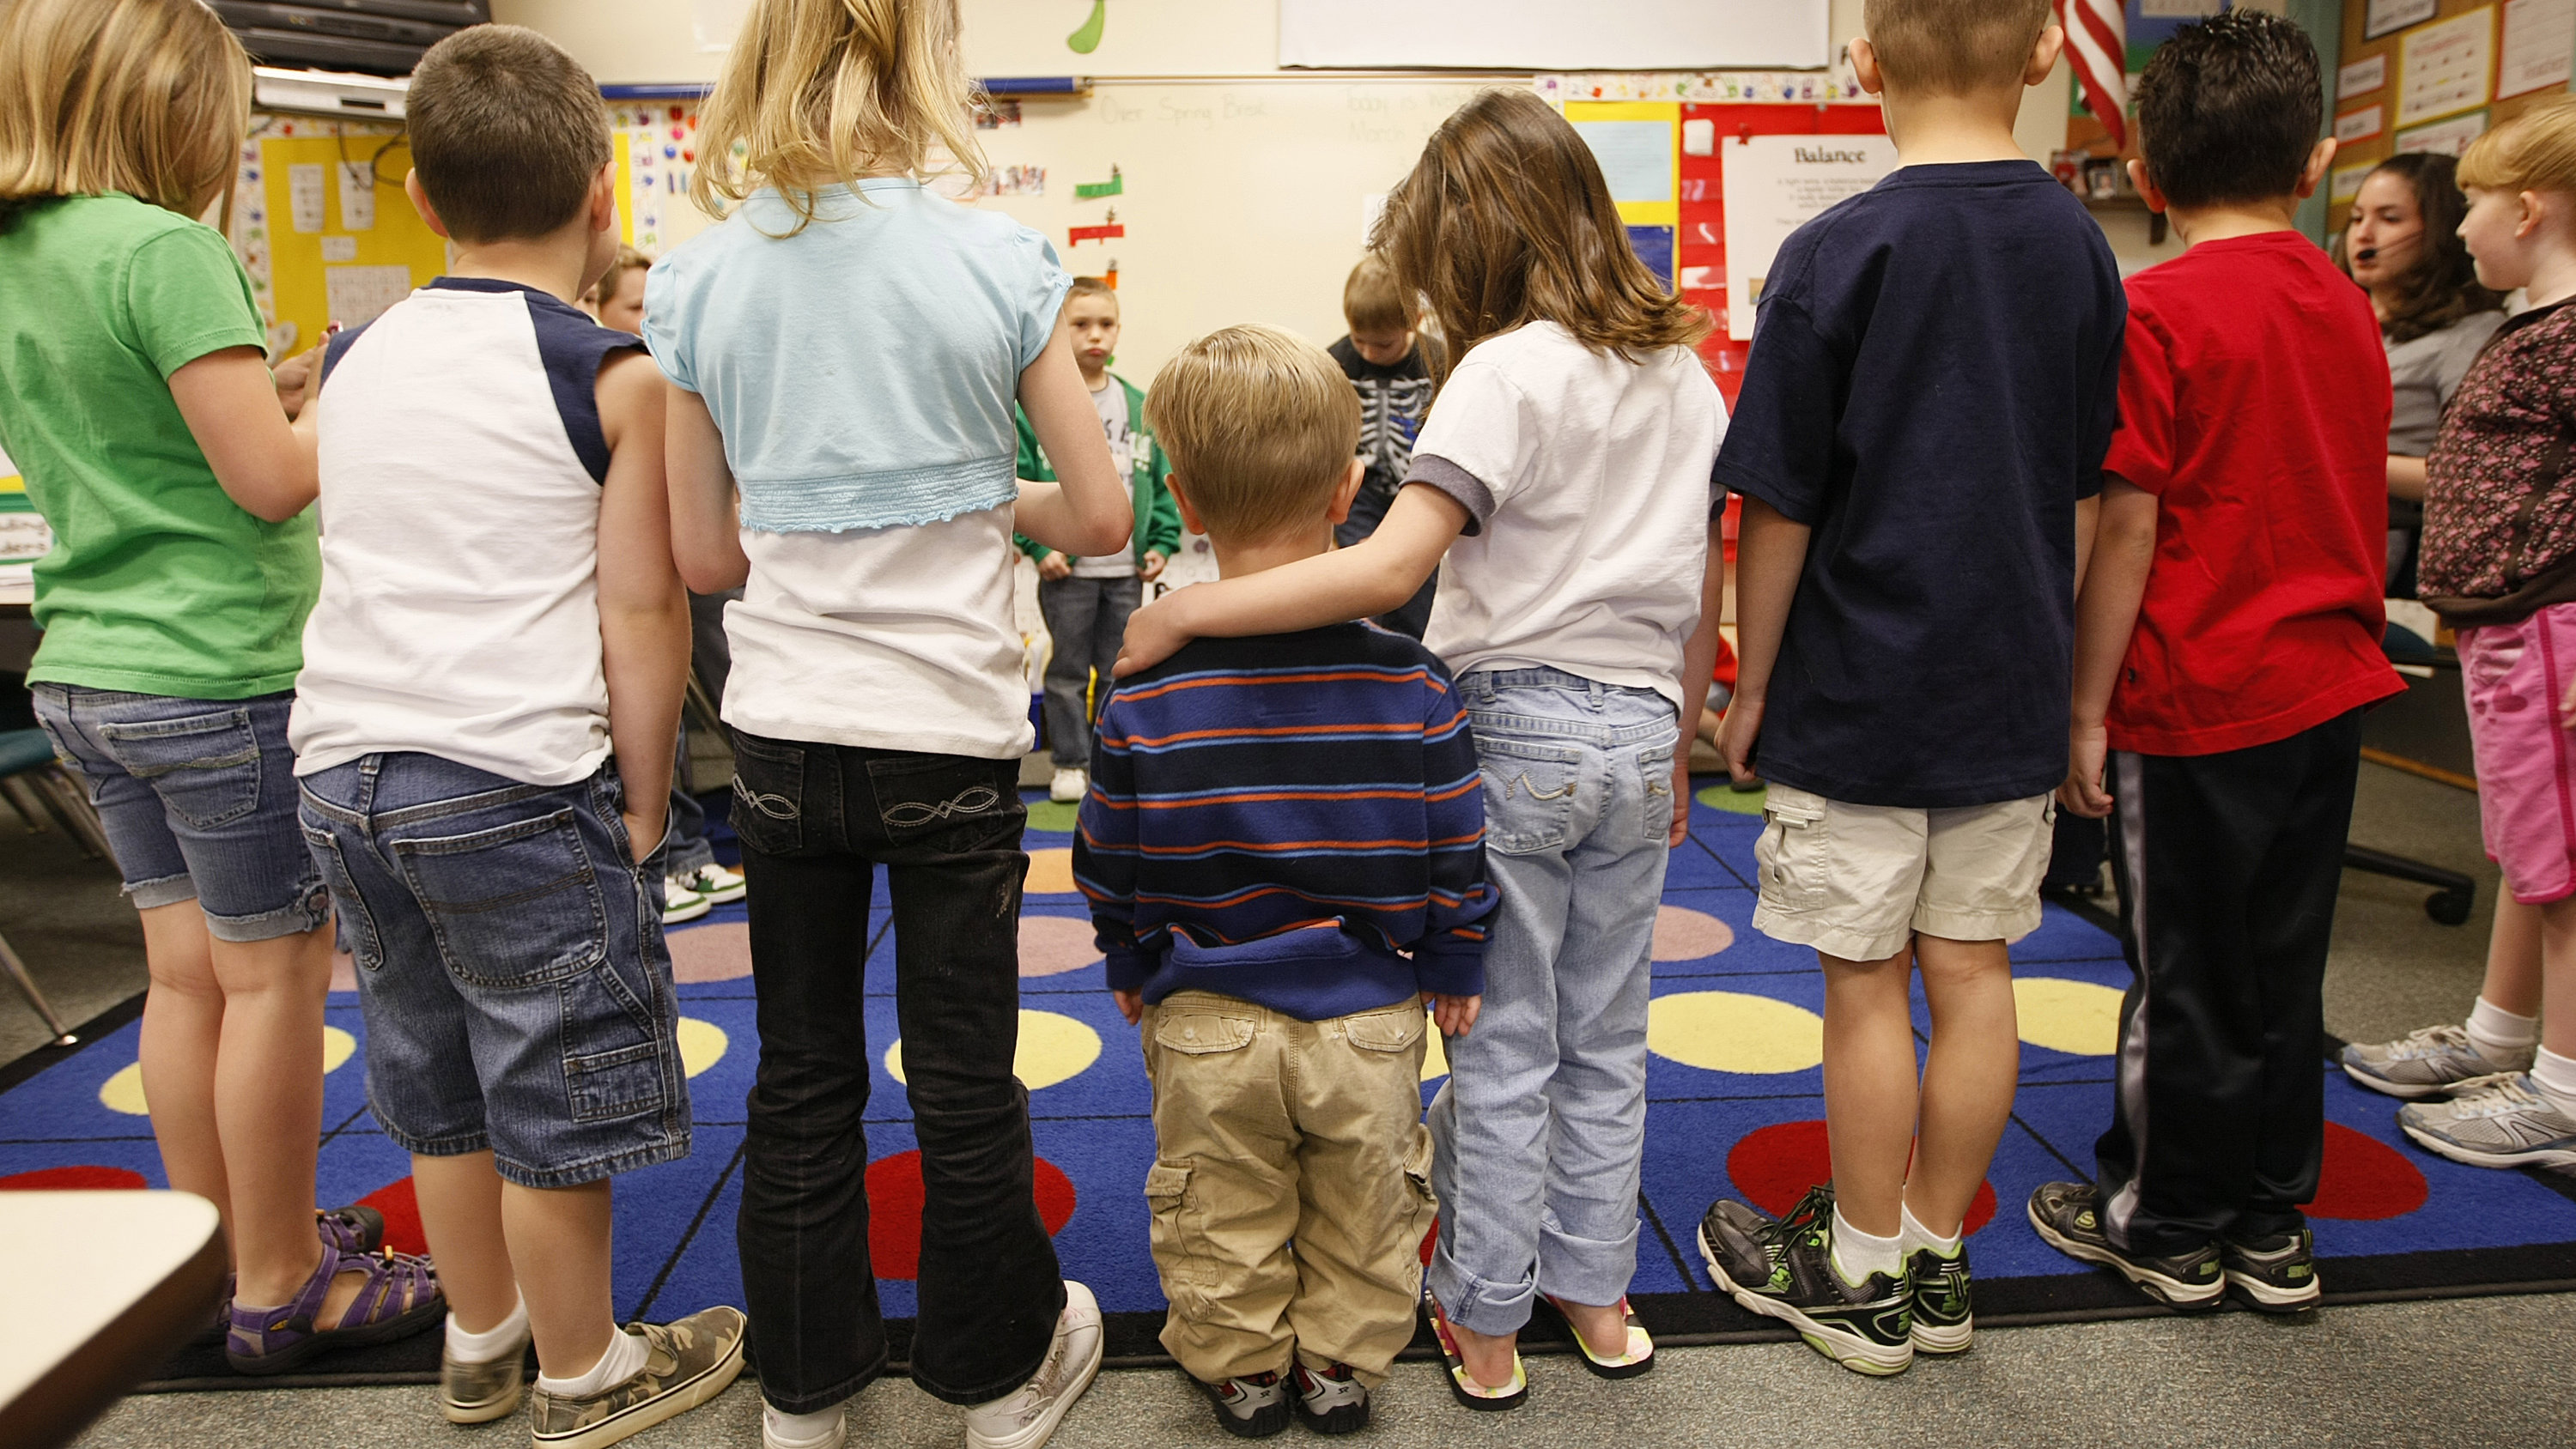 First grader Adam Kotzian (C) does a spelling drill with classmates in his classroom at Eagleview Elementary school in Thornton, Colorado March 31, 2010. Adam and his parents are achondroplastic dwarfs but his sister Avery is not. Like many people with dwarfism, the Kotzians have worked hard to overcome social and physical barriers to lead full and normal lives which includes working with non-profit group, Little People of America (LPA), to stop people treating them like a circus act.  To match Reuters-Life! story LIFE-DWARFISM/